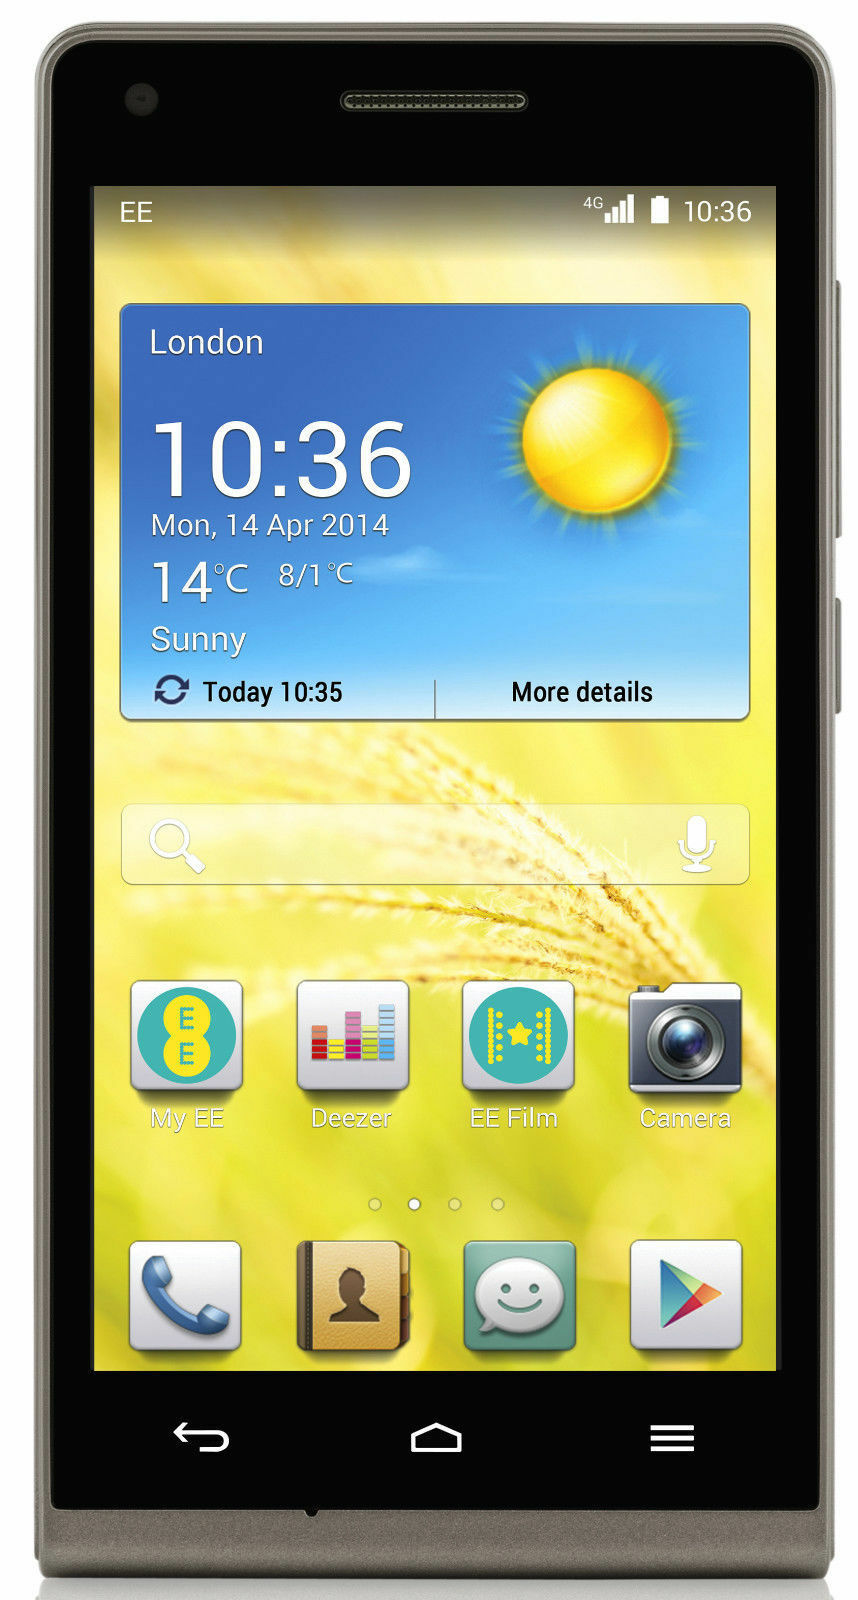 Core android 4 1 mobile phone smartphone unlocked touch white ebay - Ee Kestrel